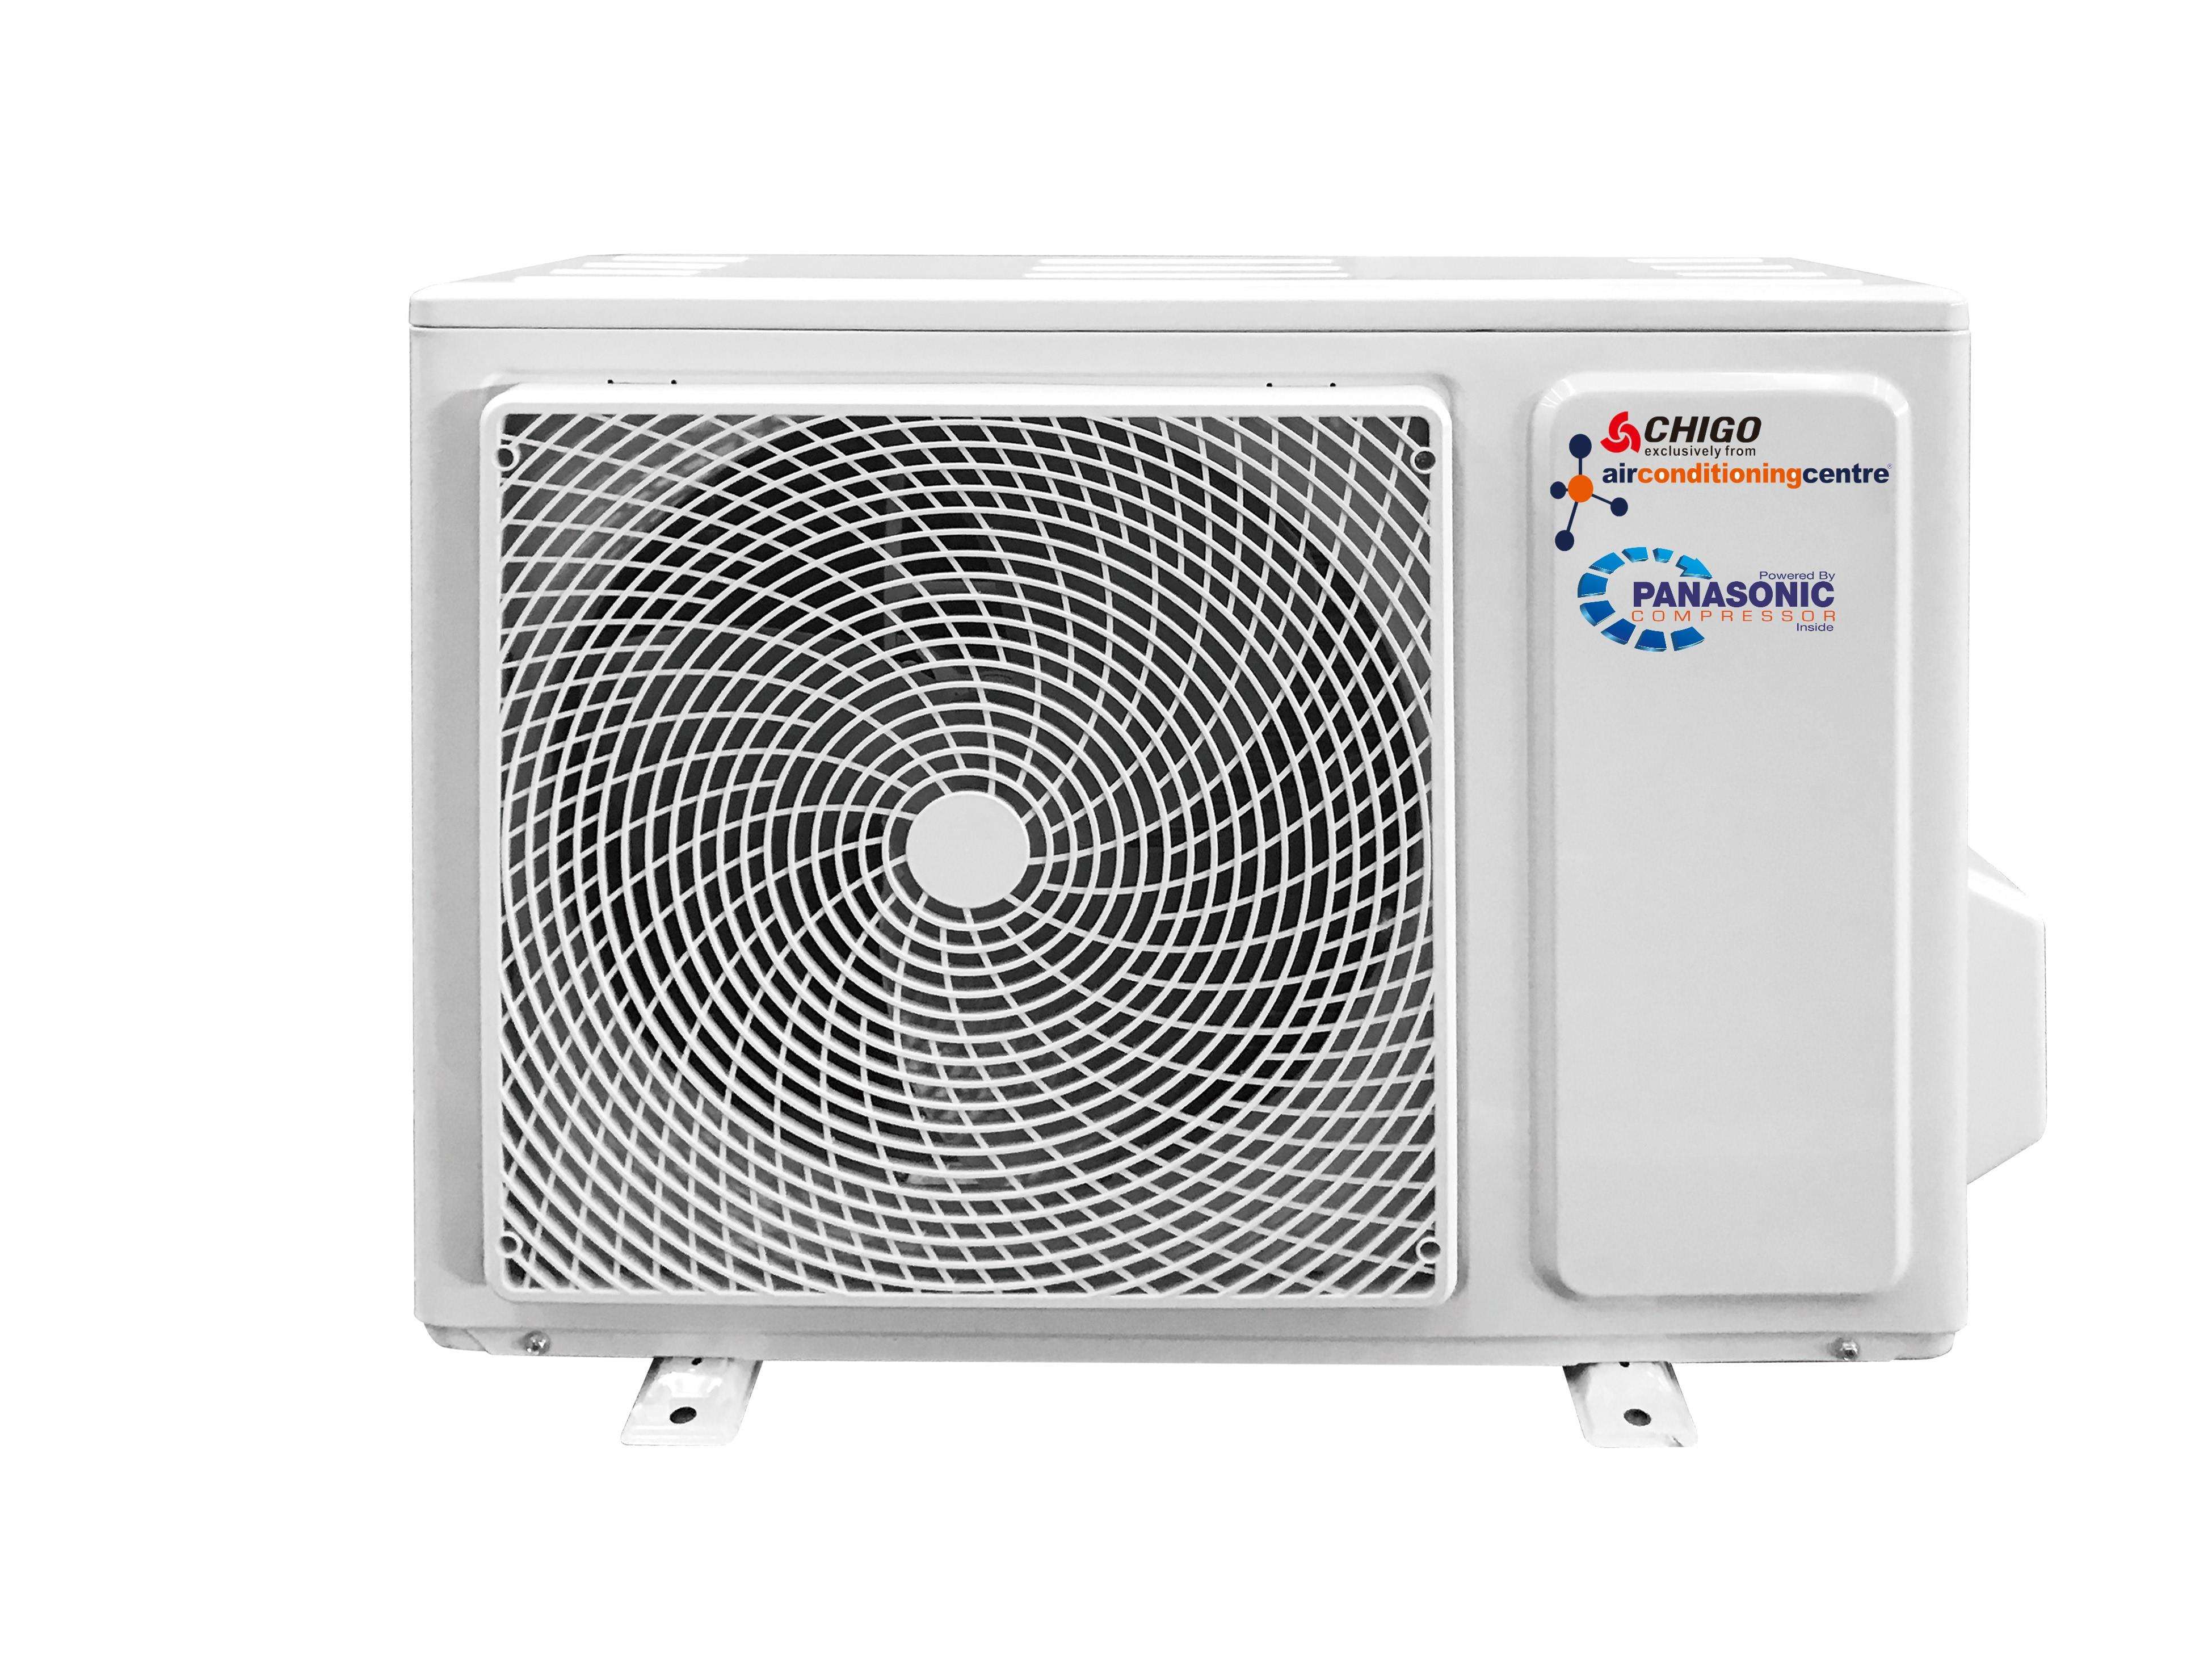 NEW KFR66-IW/AG 7.0kW Panasonic Powered R32 Split Air Conditioner with Wifi Capability and Black Gloss Fascia Aircon247.com   discount portable ...